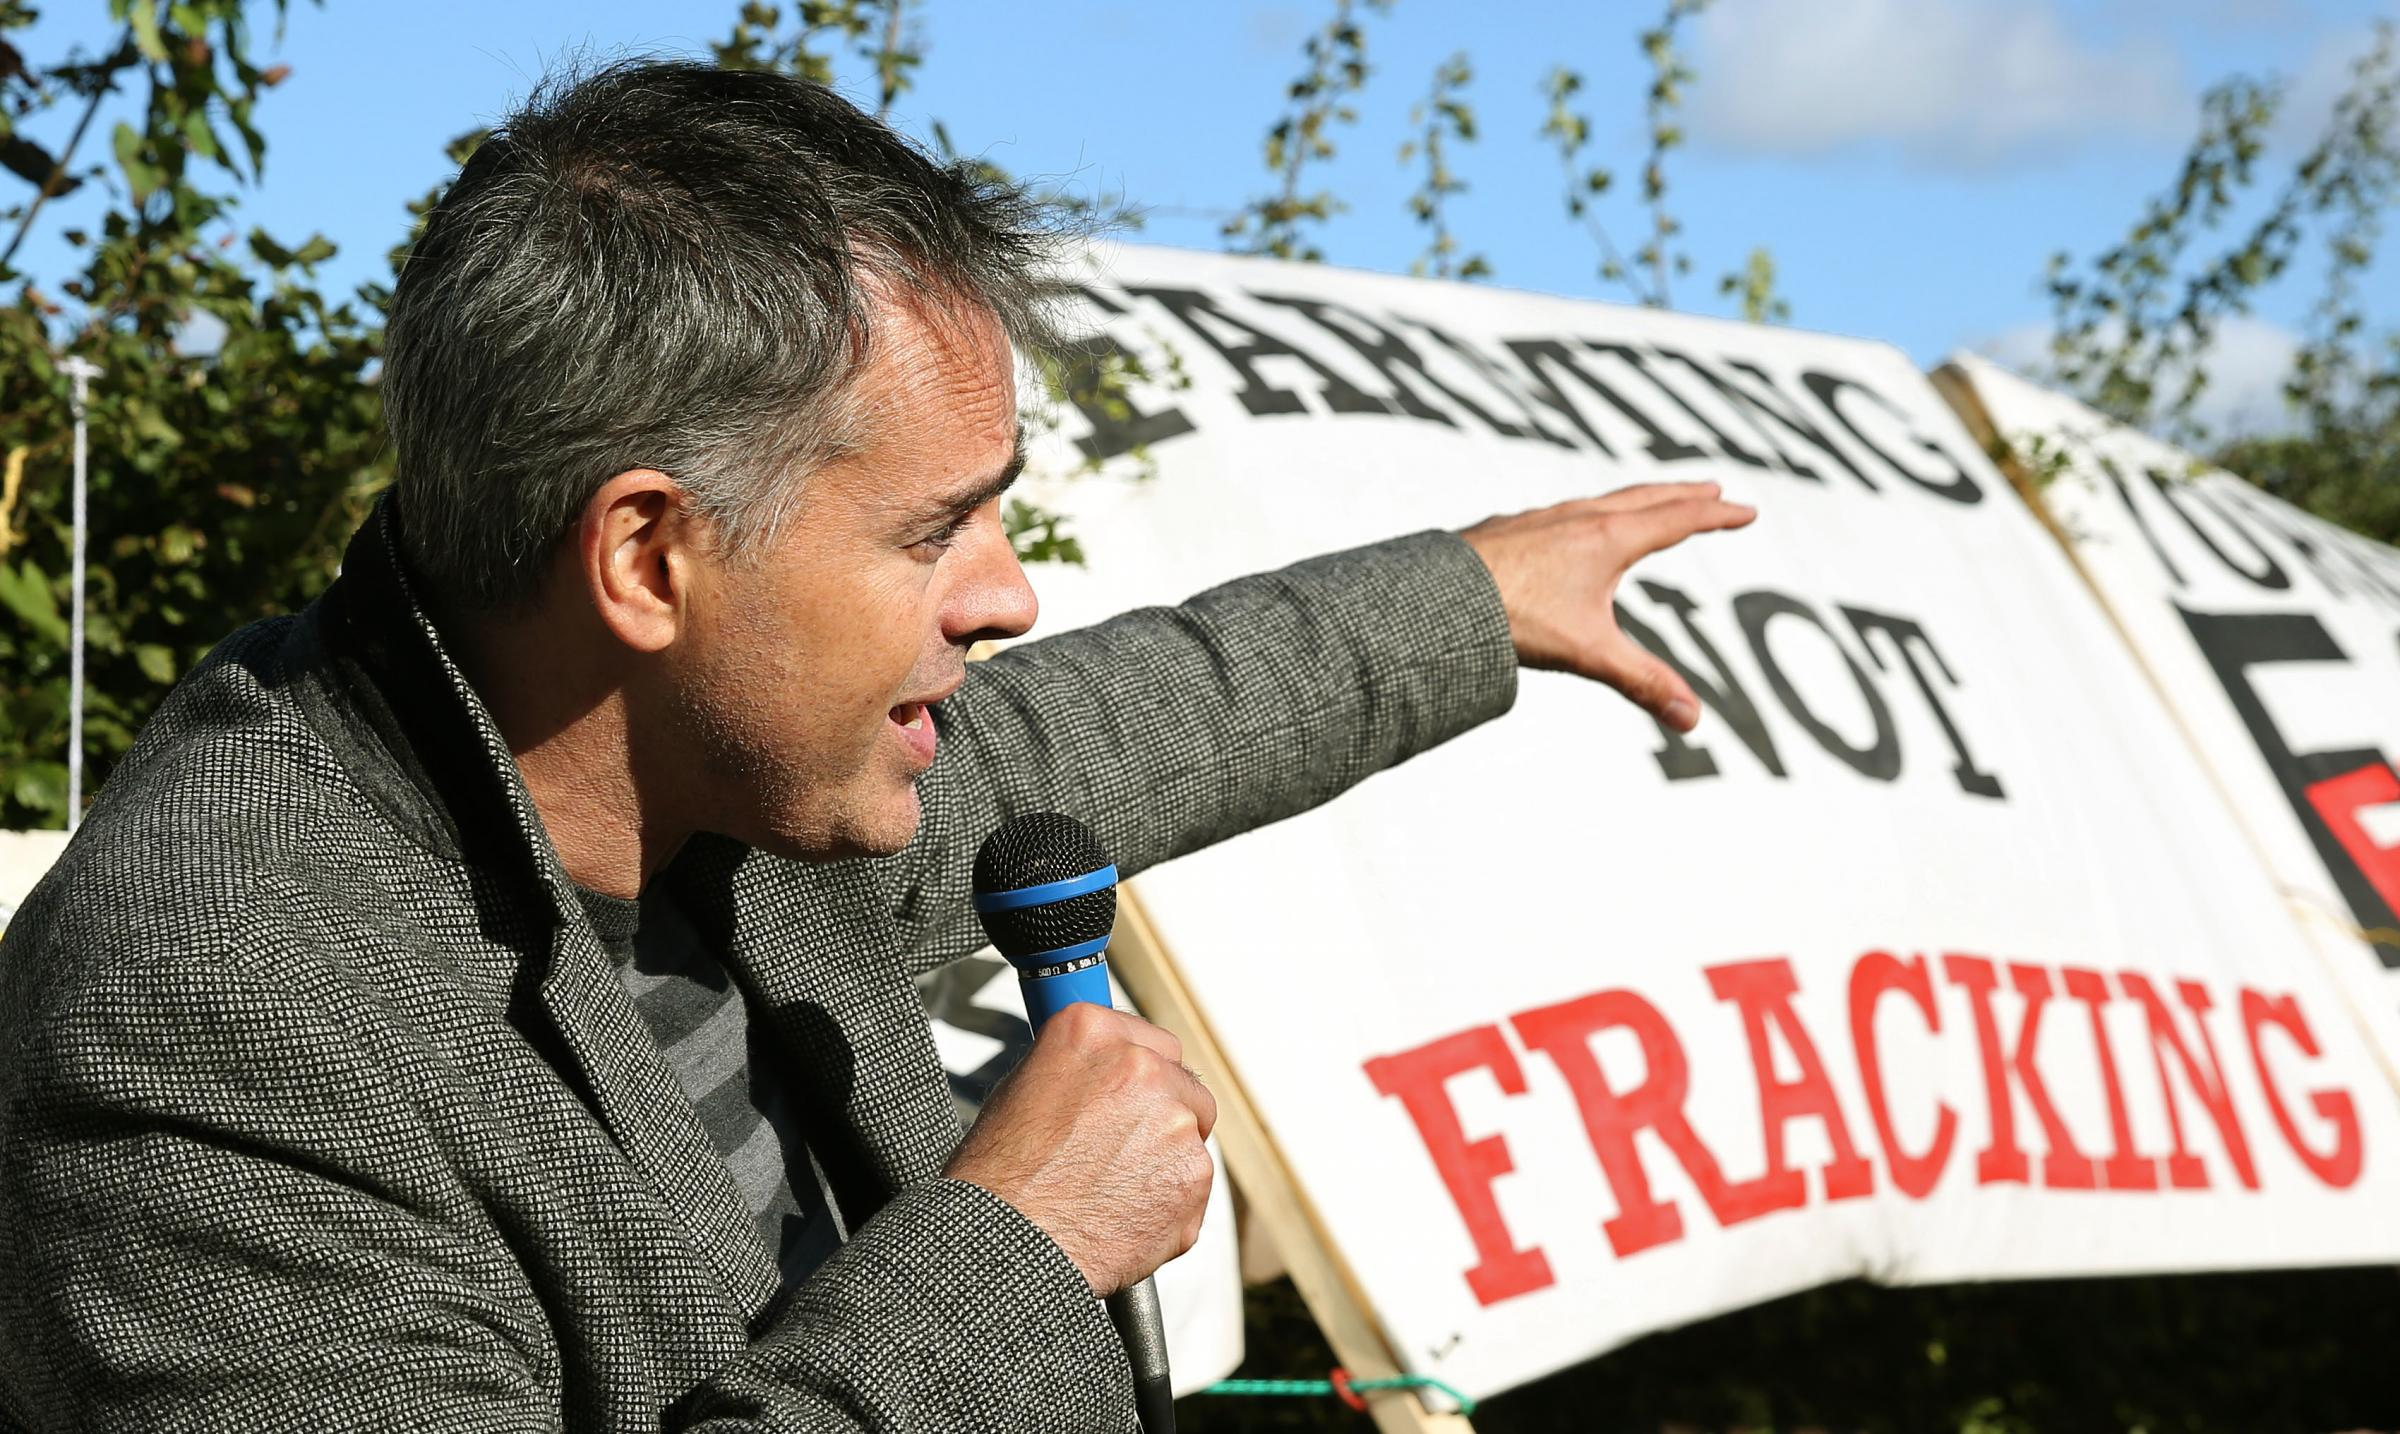 Green Party co-leader dragged from frack site entrance by police